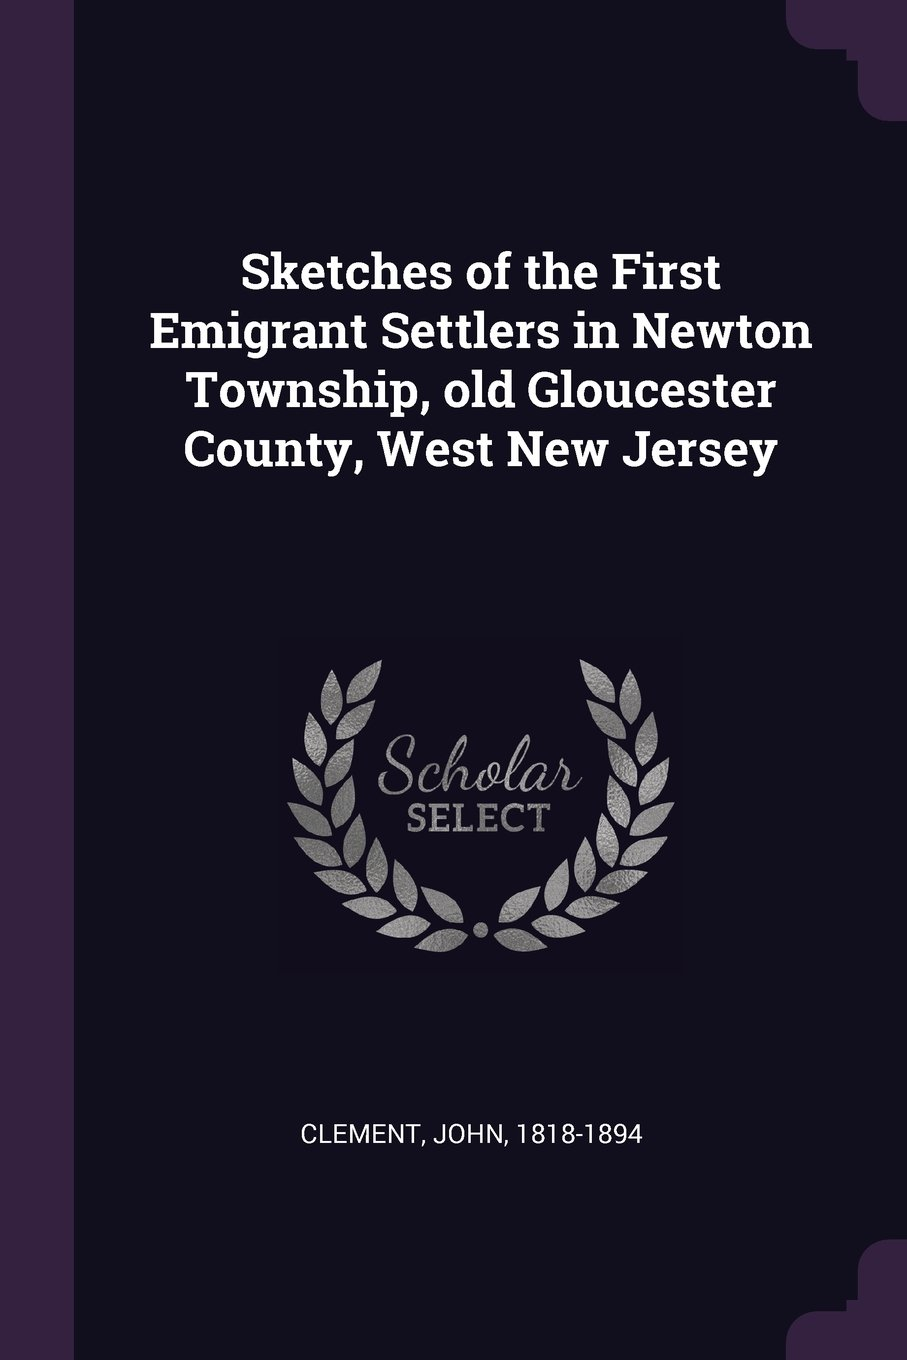 Sketches of the First Emigrant Settlers in Newton Township, old Gloucester County, West New Jersey